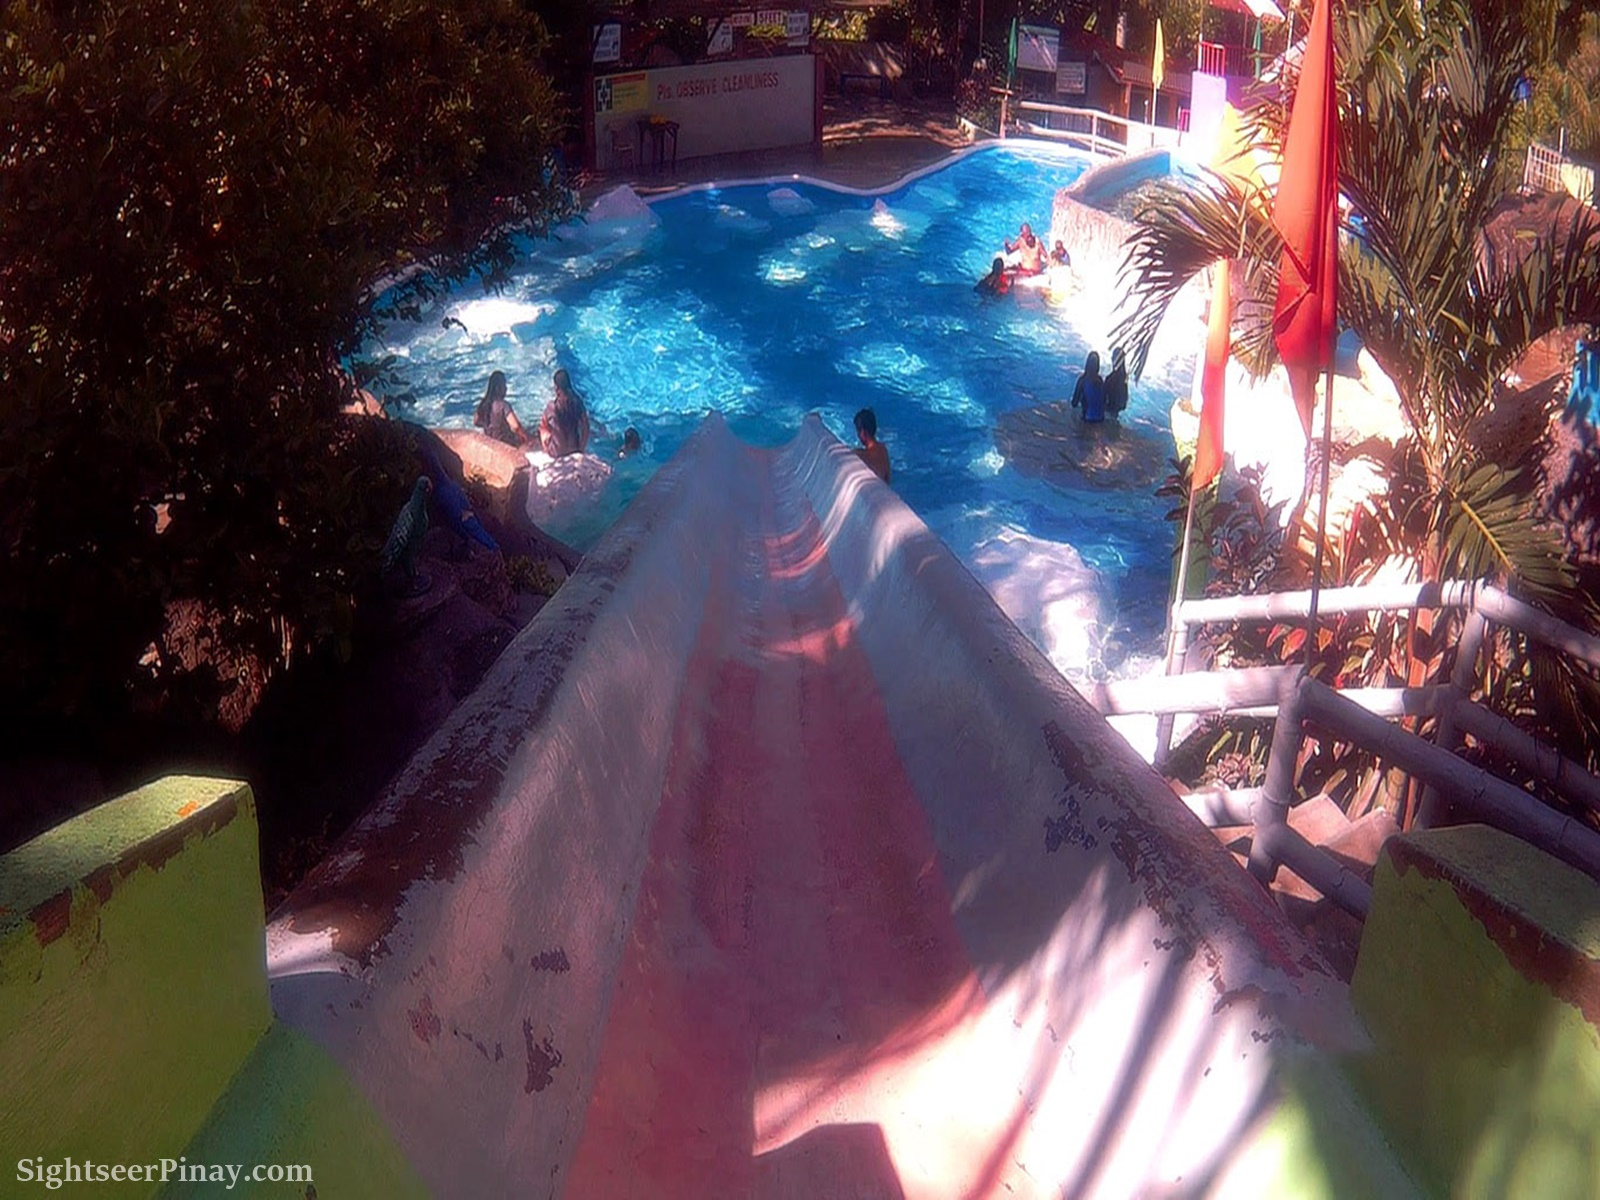 The view as captured atop the slide of a five feet pool.